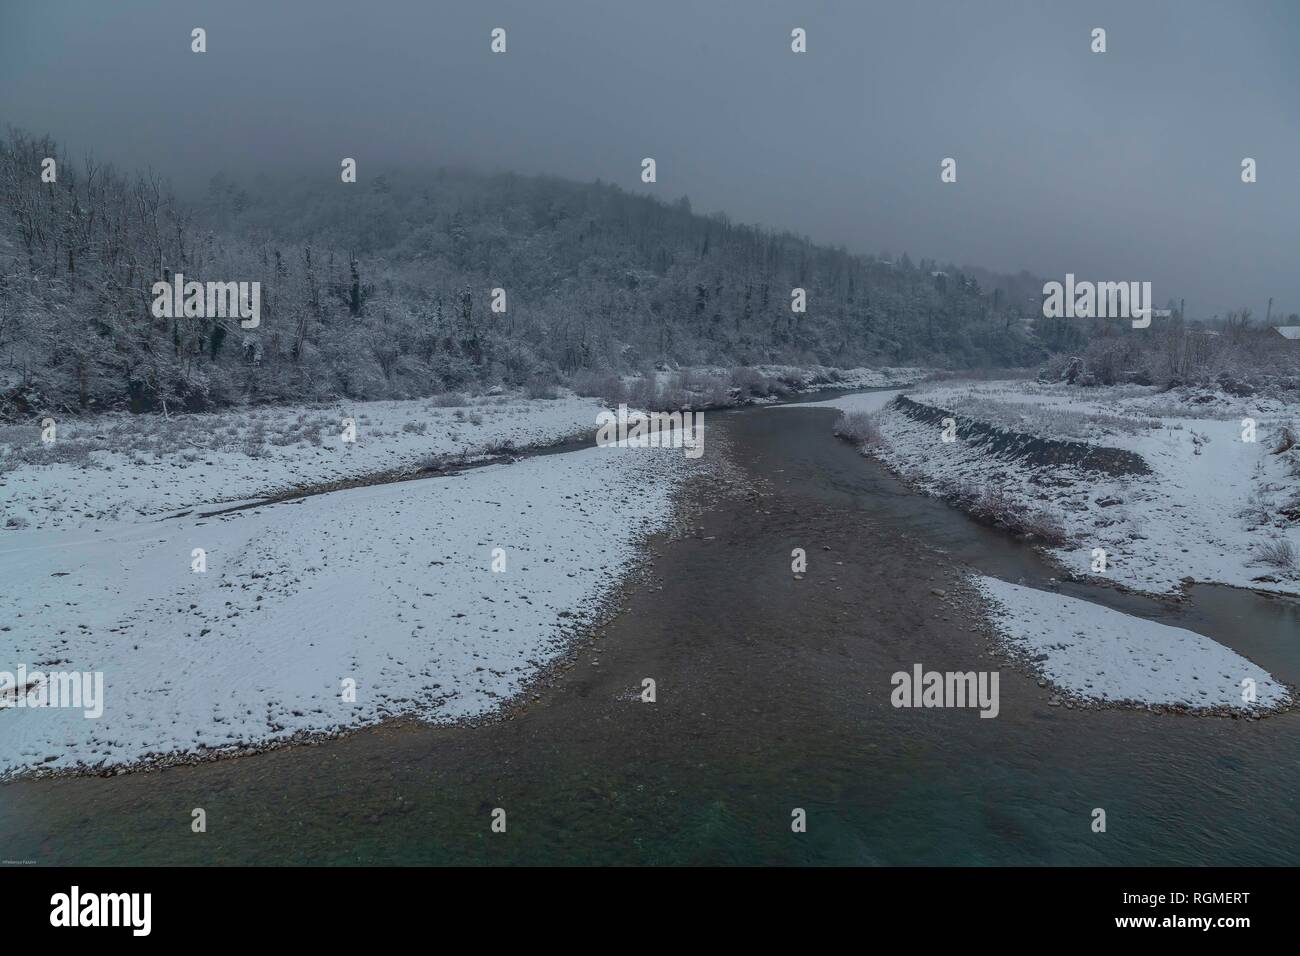 Genoa, Italy. 30th January 2019.   View of the torrent Scrivia 30 Km north of Genoa, 460 meters above sea level, during today's snowfall in Liguria on January 30, 2019 in Genoa, Italy. A cold snap has hit Italy this week with snow forecast in  other cities Italy. (Photo by Awakening/Getty Images) Credit: Awakening/Alamy Live News - Stock Image